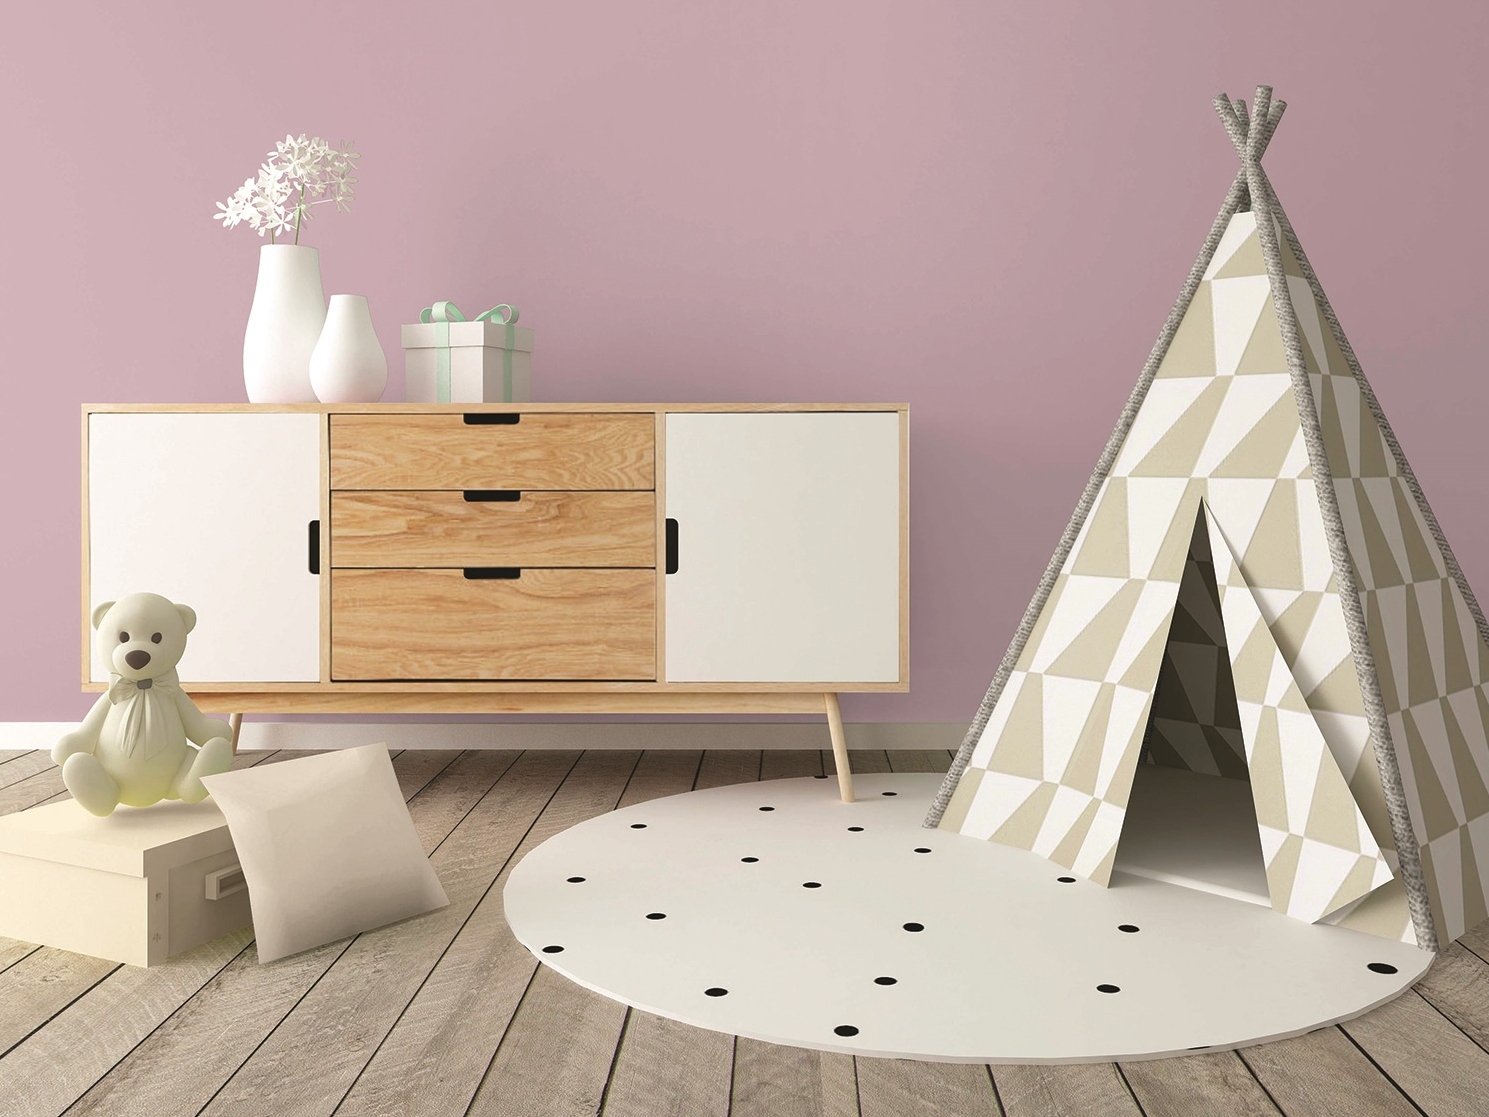 peinture chambre d enfant idee peinture chambre with. Black Bedroom Furniture Sets. Home Design Ideas